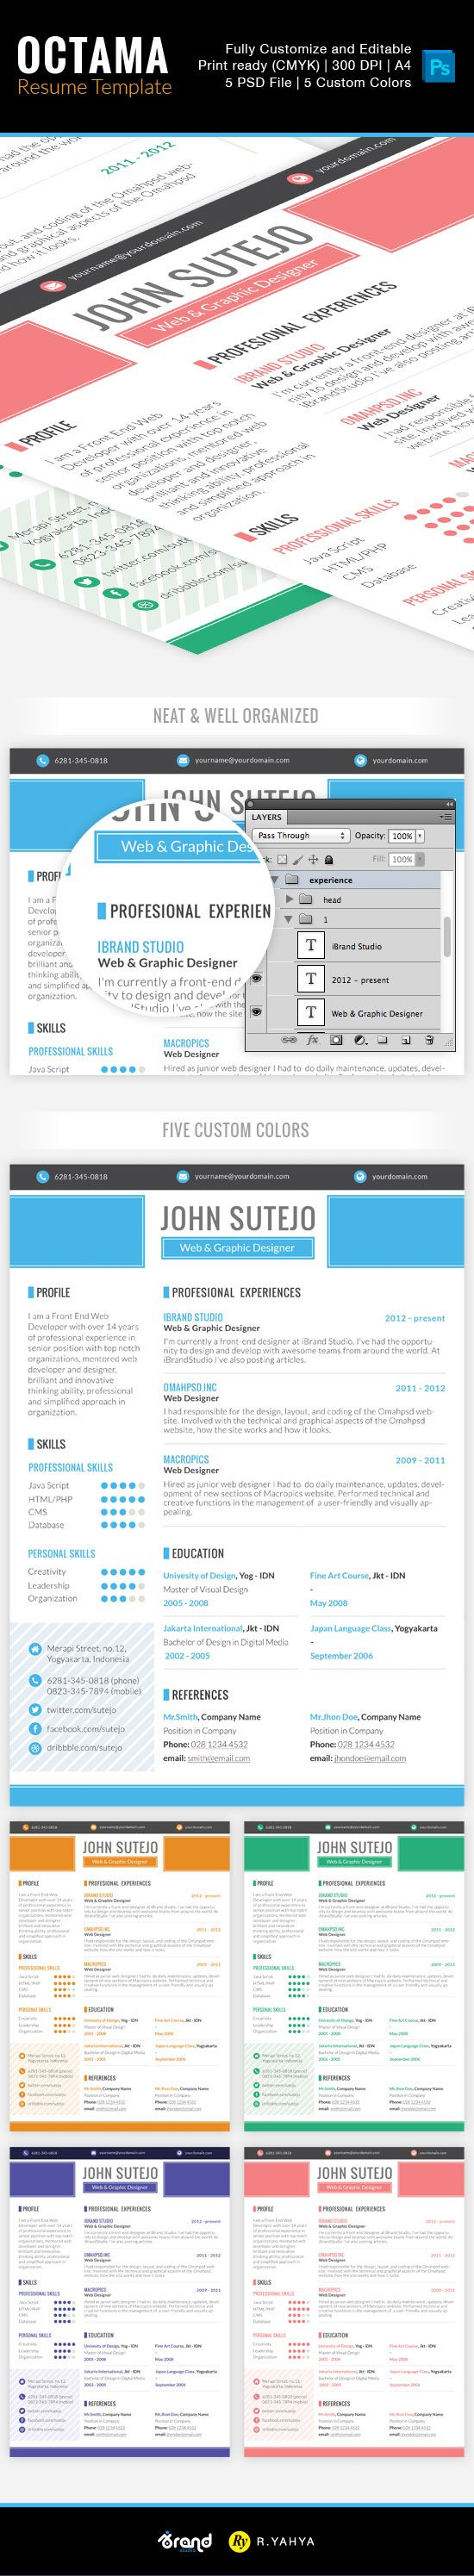 Free Resume Template Octama Single Page Psd  Free Resume